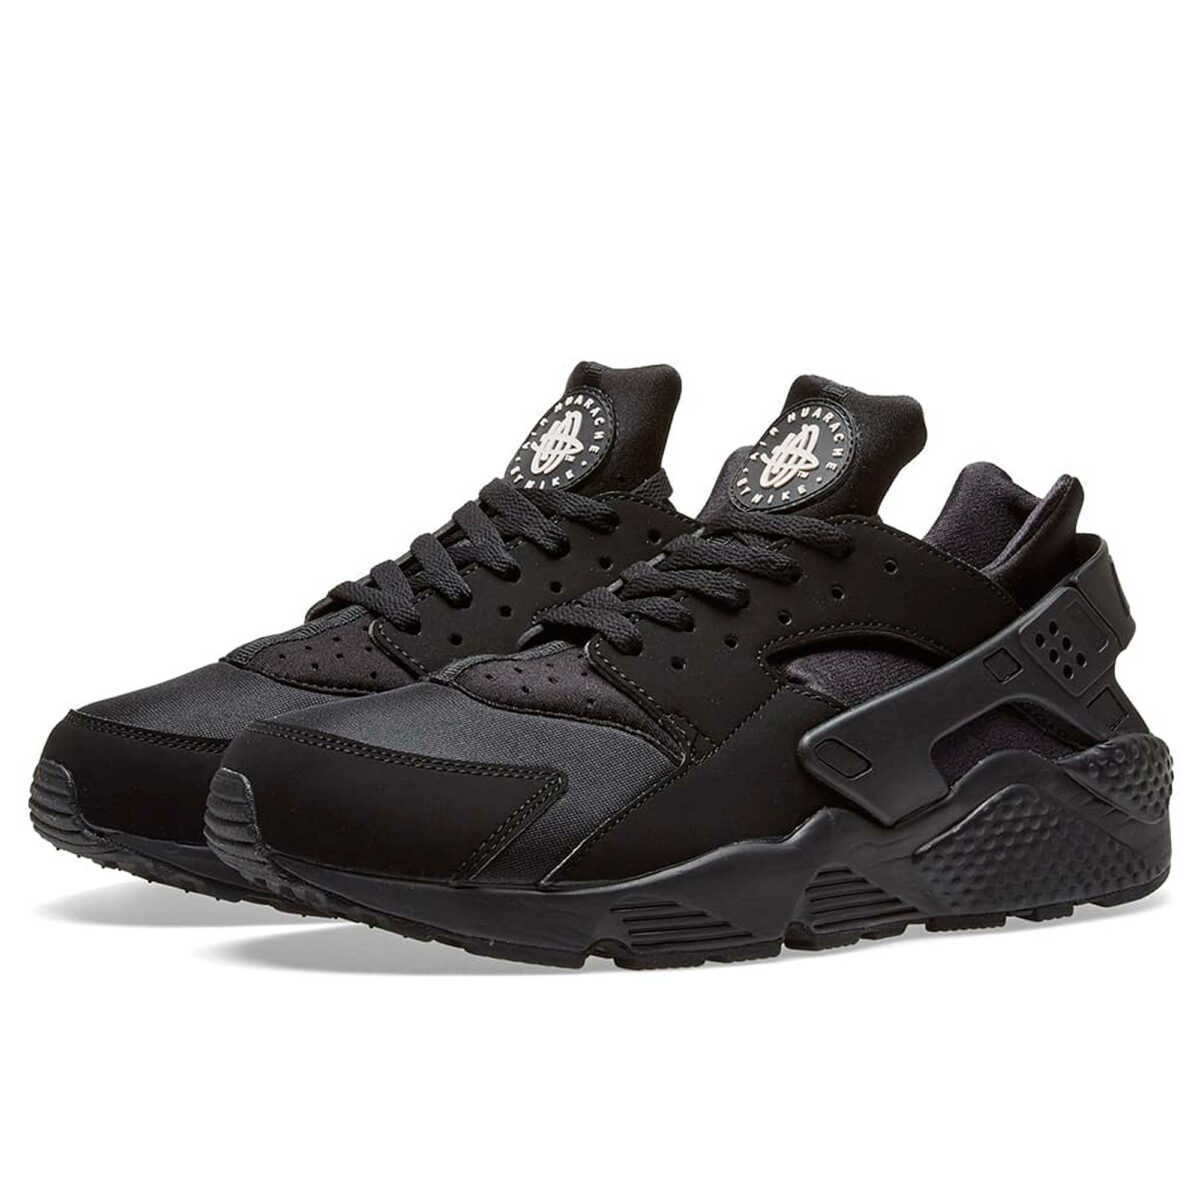 nike air huarache all black 318429_003 купить